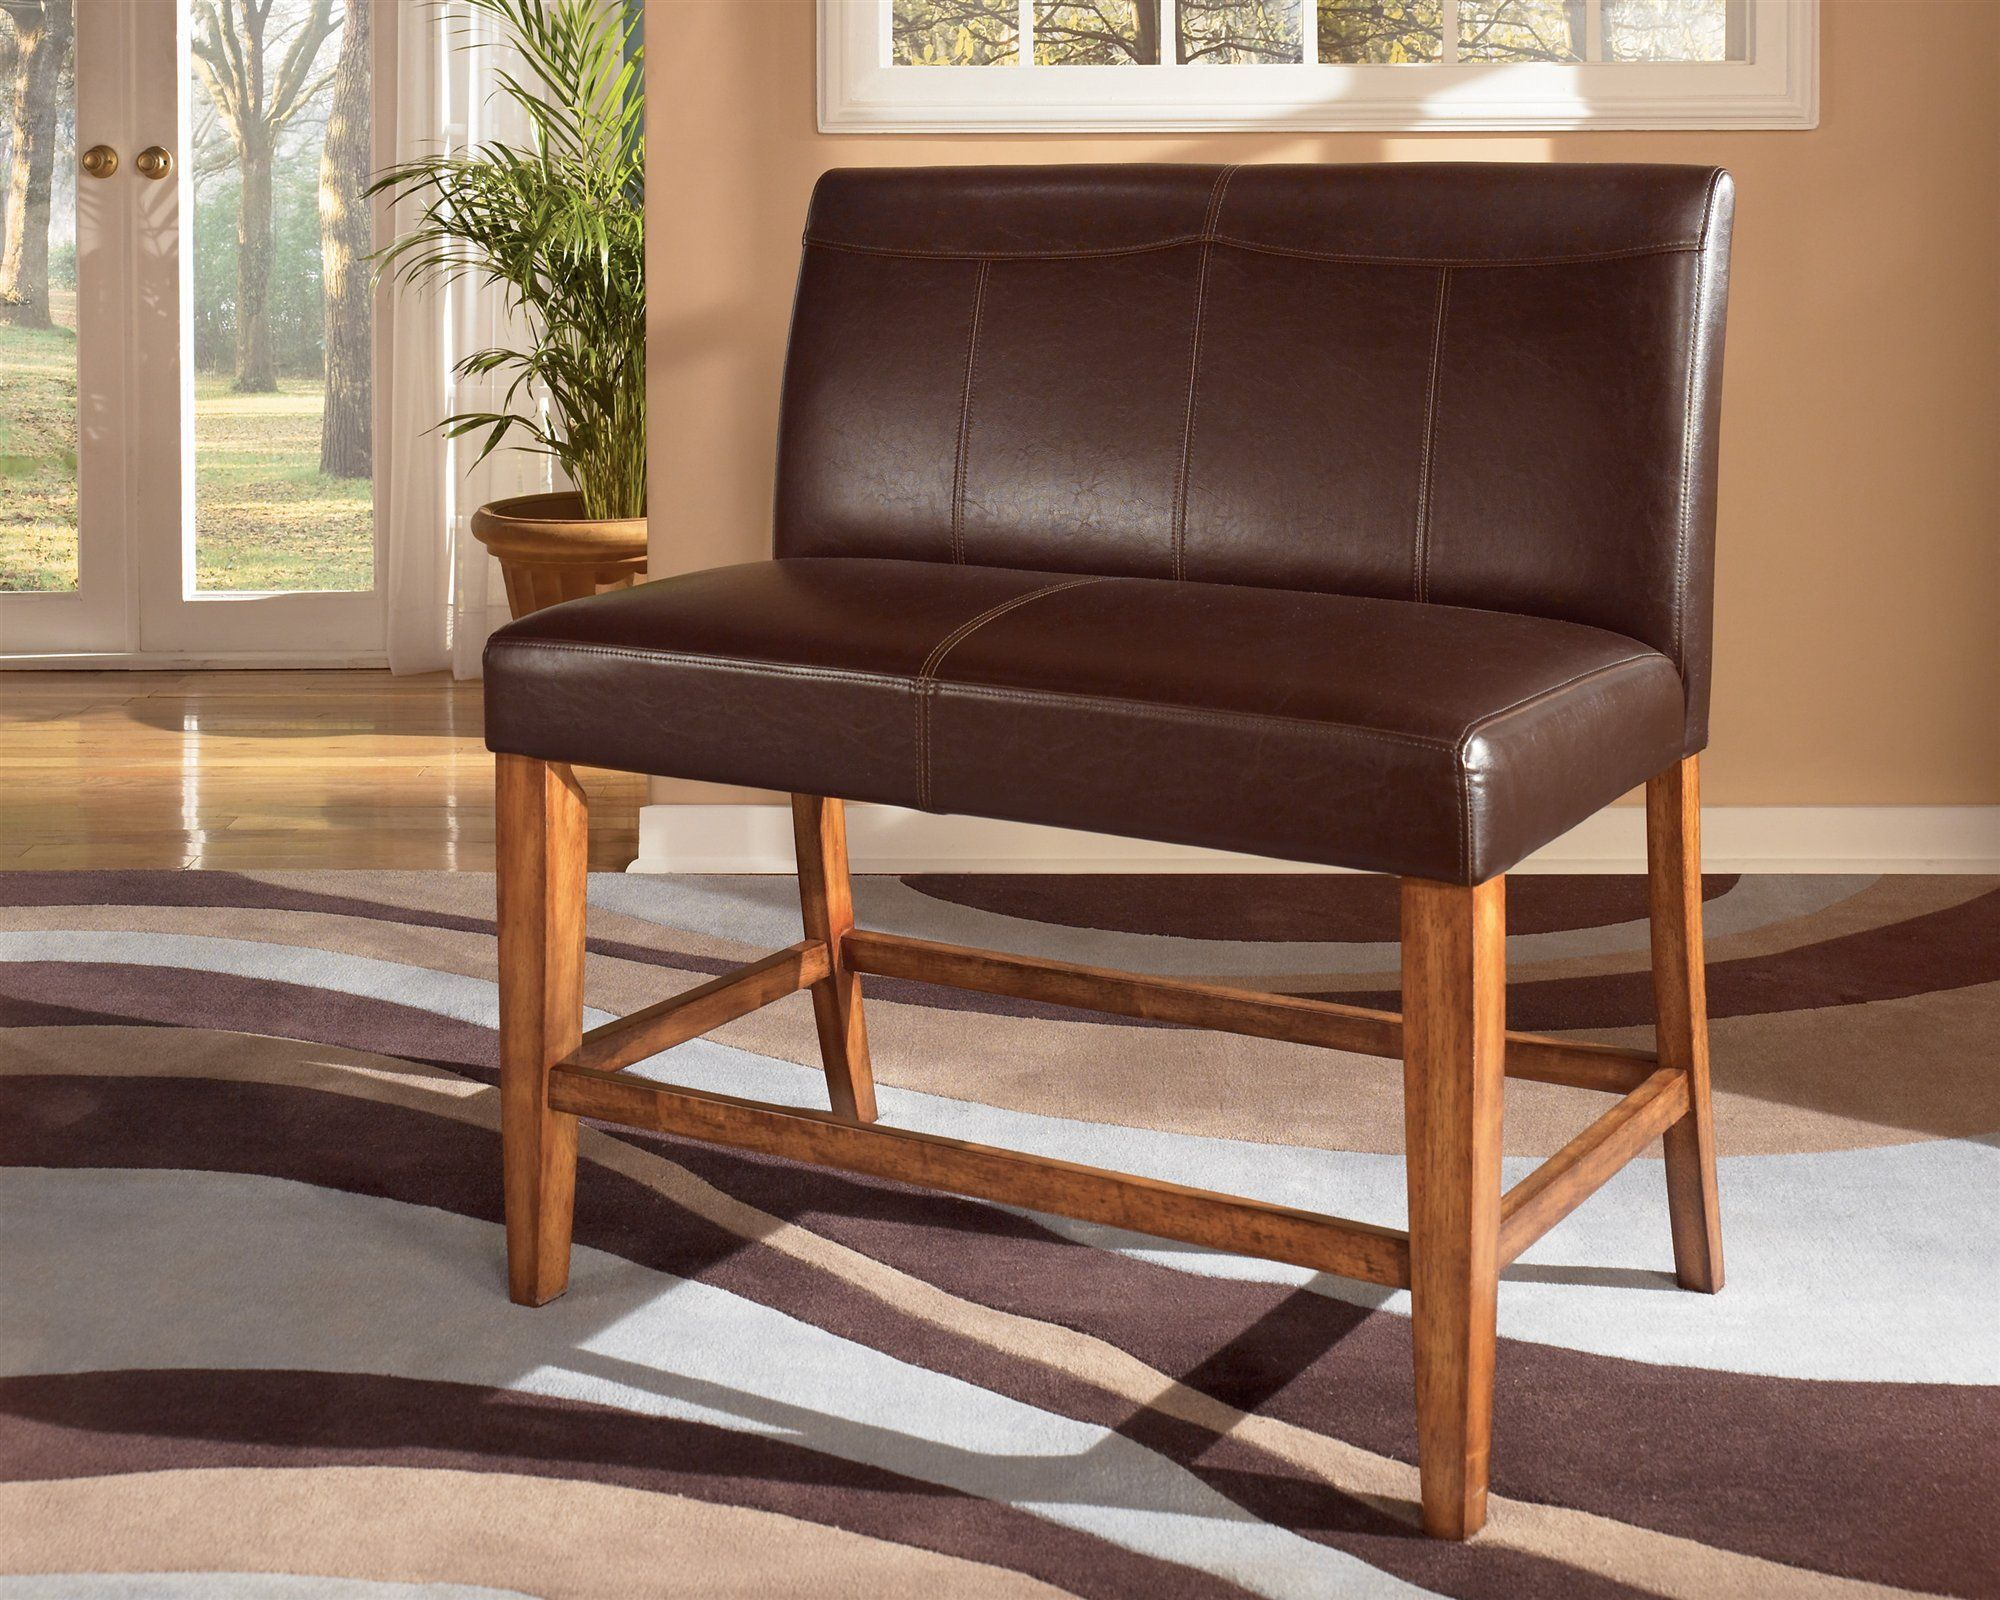 Leather dual seat counter bench For the Home